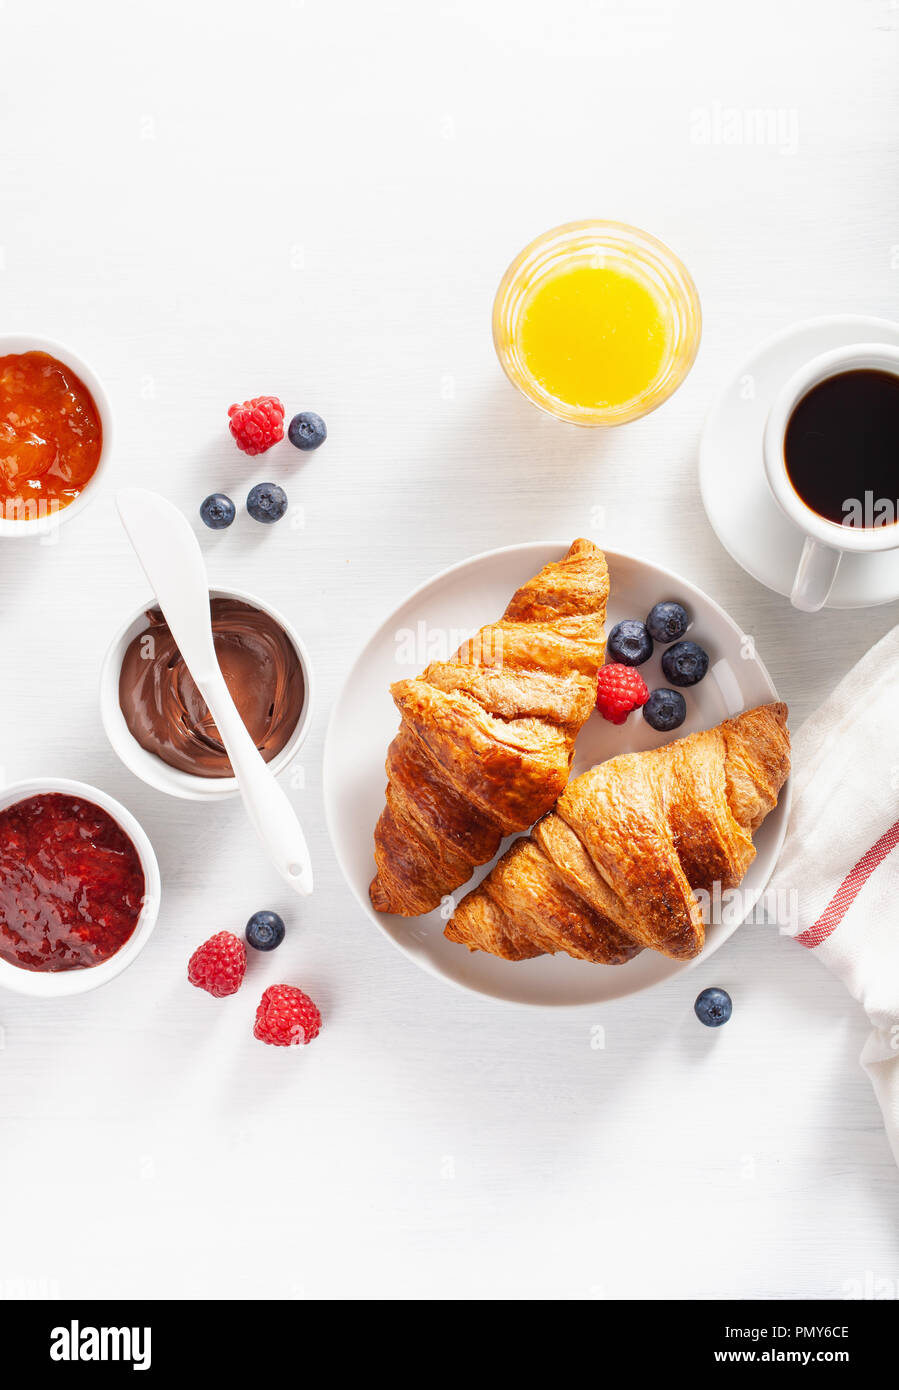 Continental breakfast with croissant, jam, chocolate spread and coffee. Top view - Stock Image